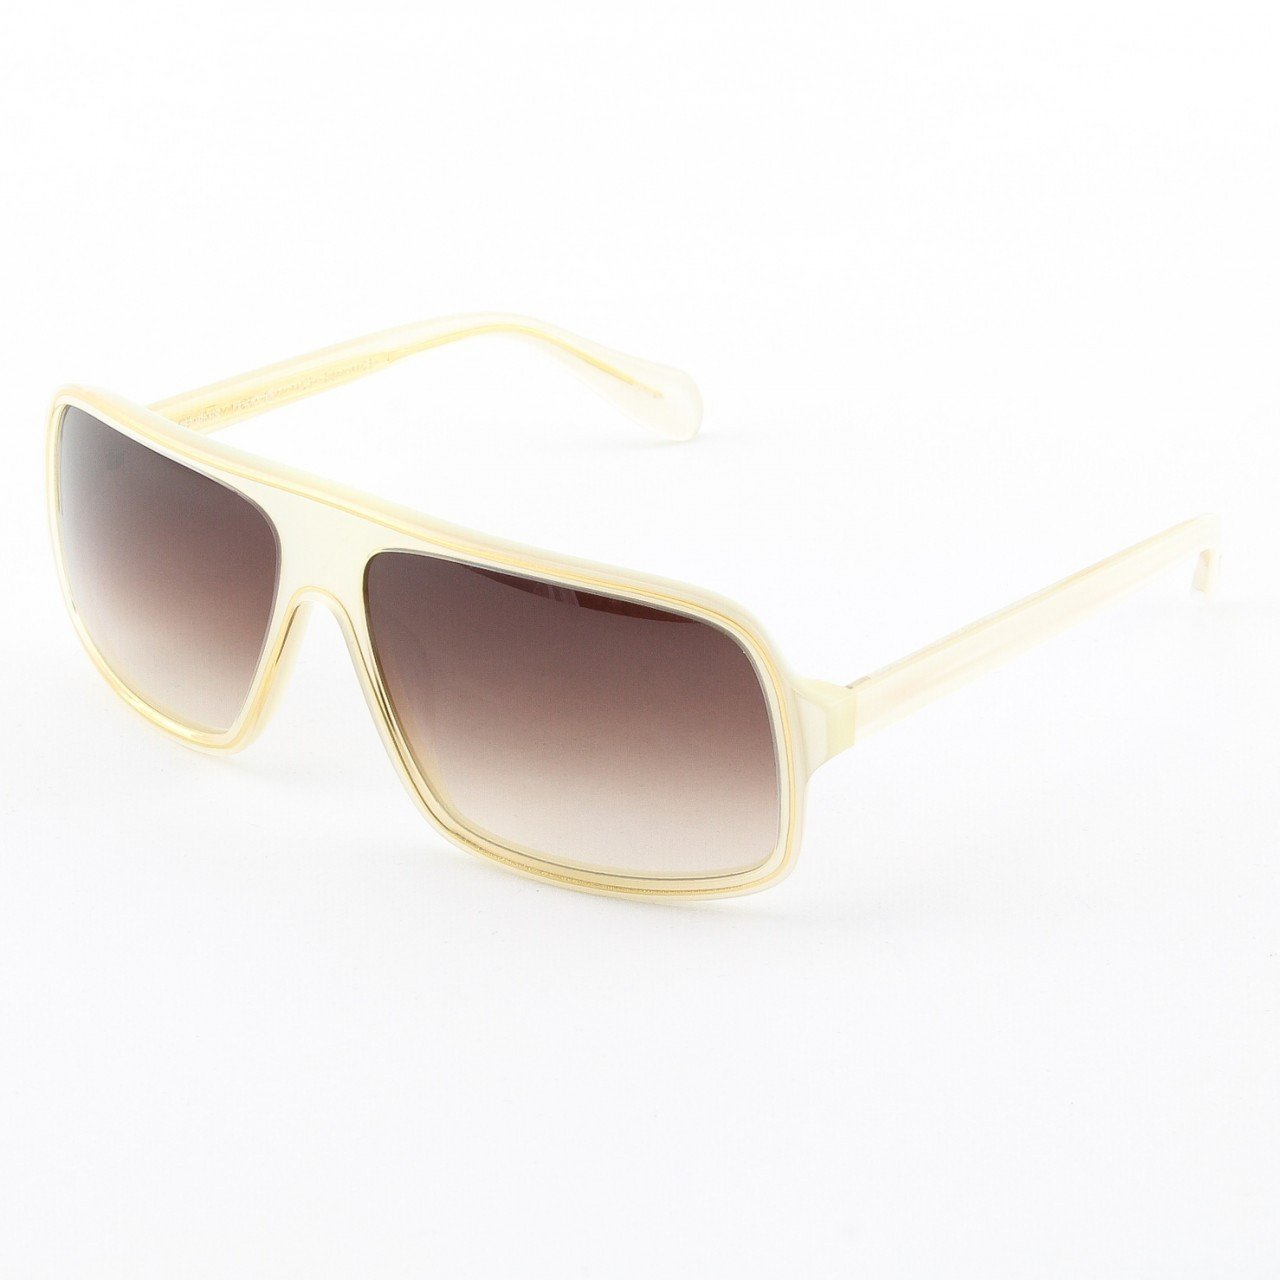 Oliver Peoples Marclay Sunglasses Col. IS-SB Ivory Gold with Brown Gradient Lenses